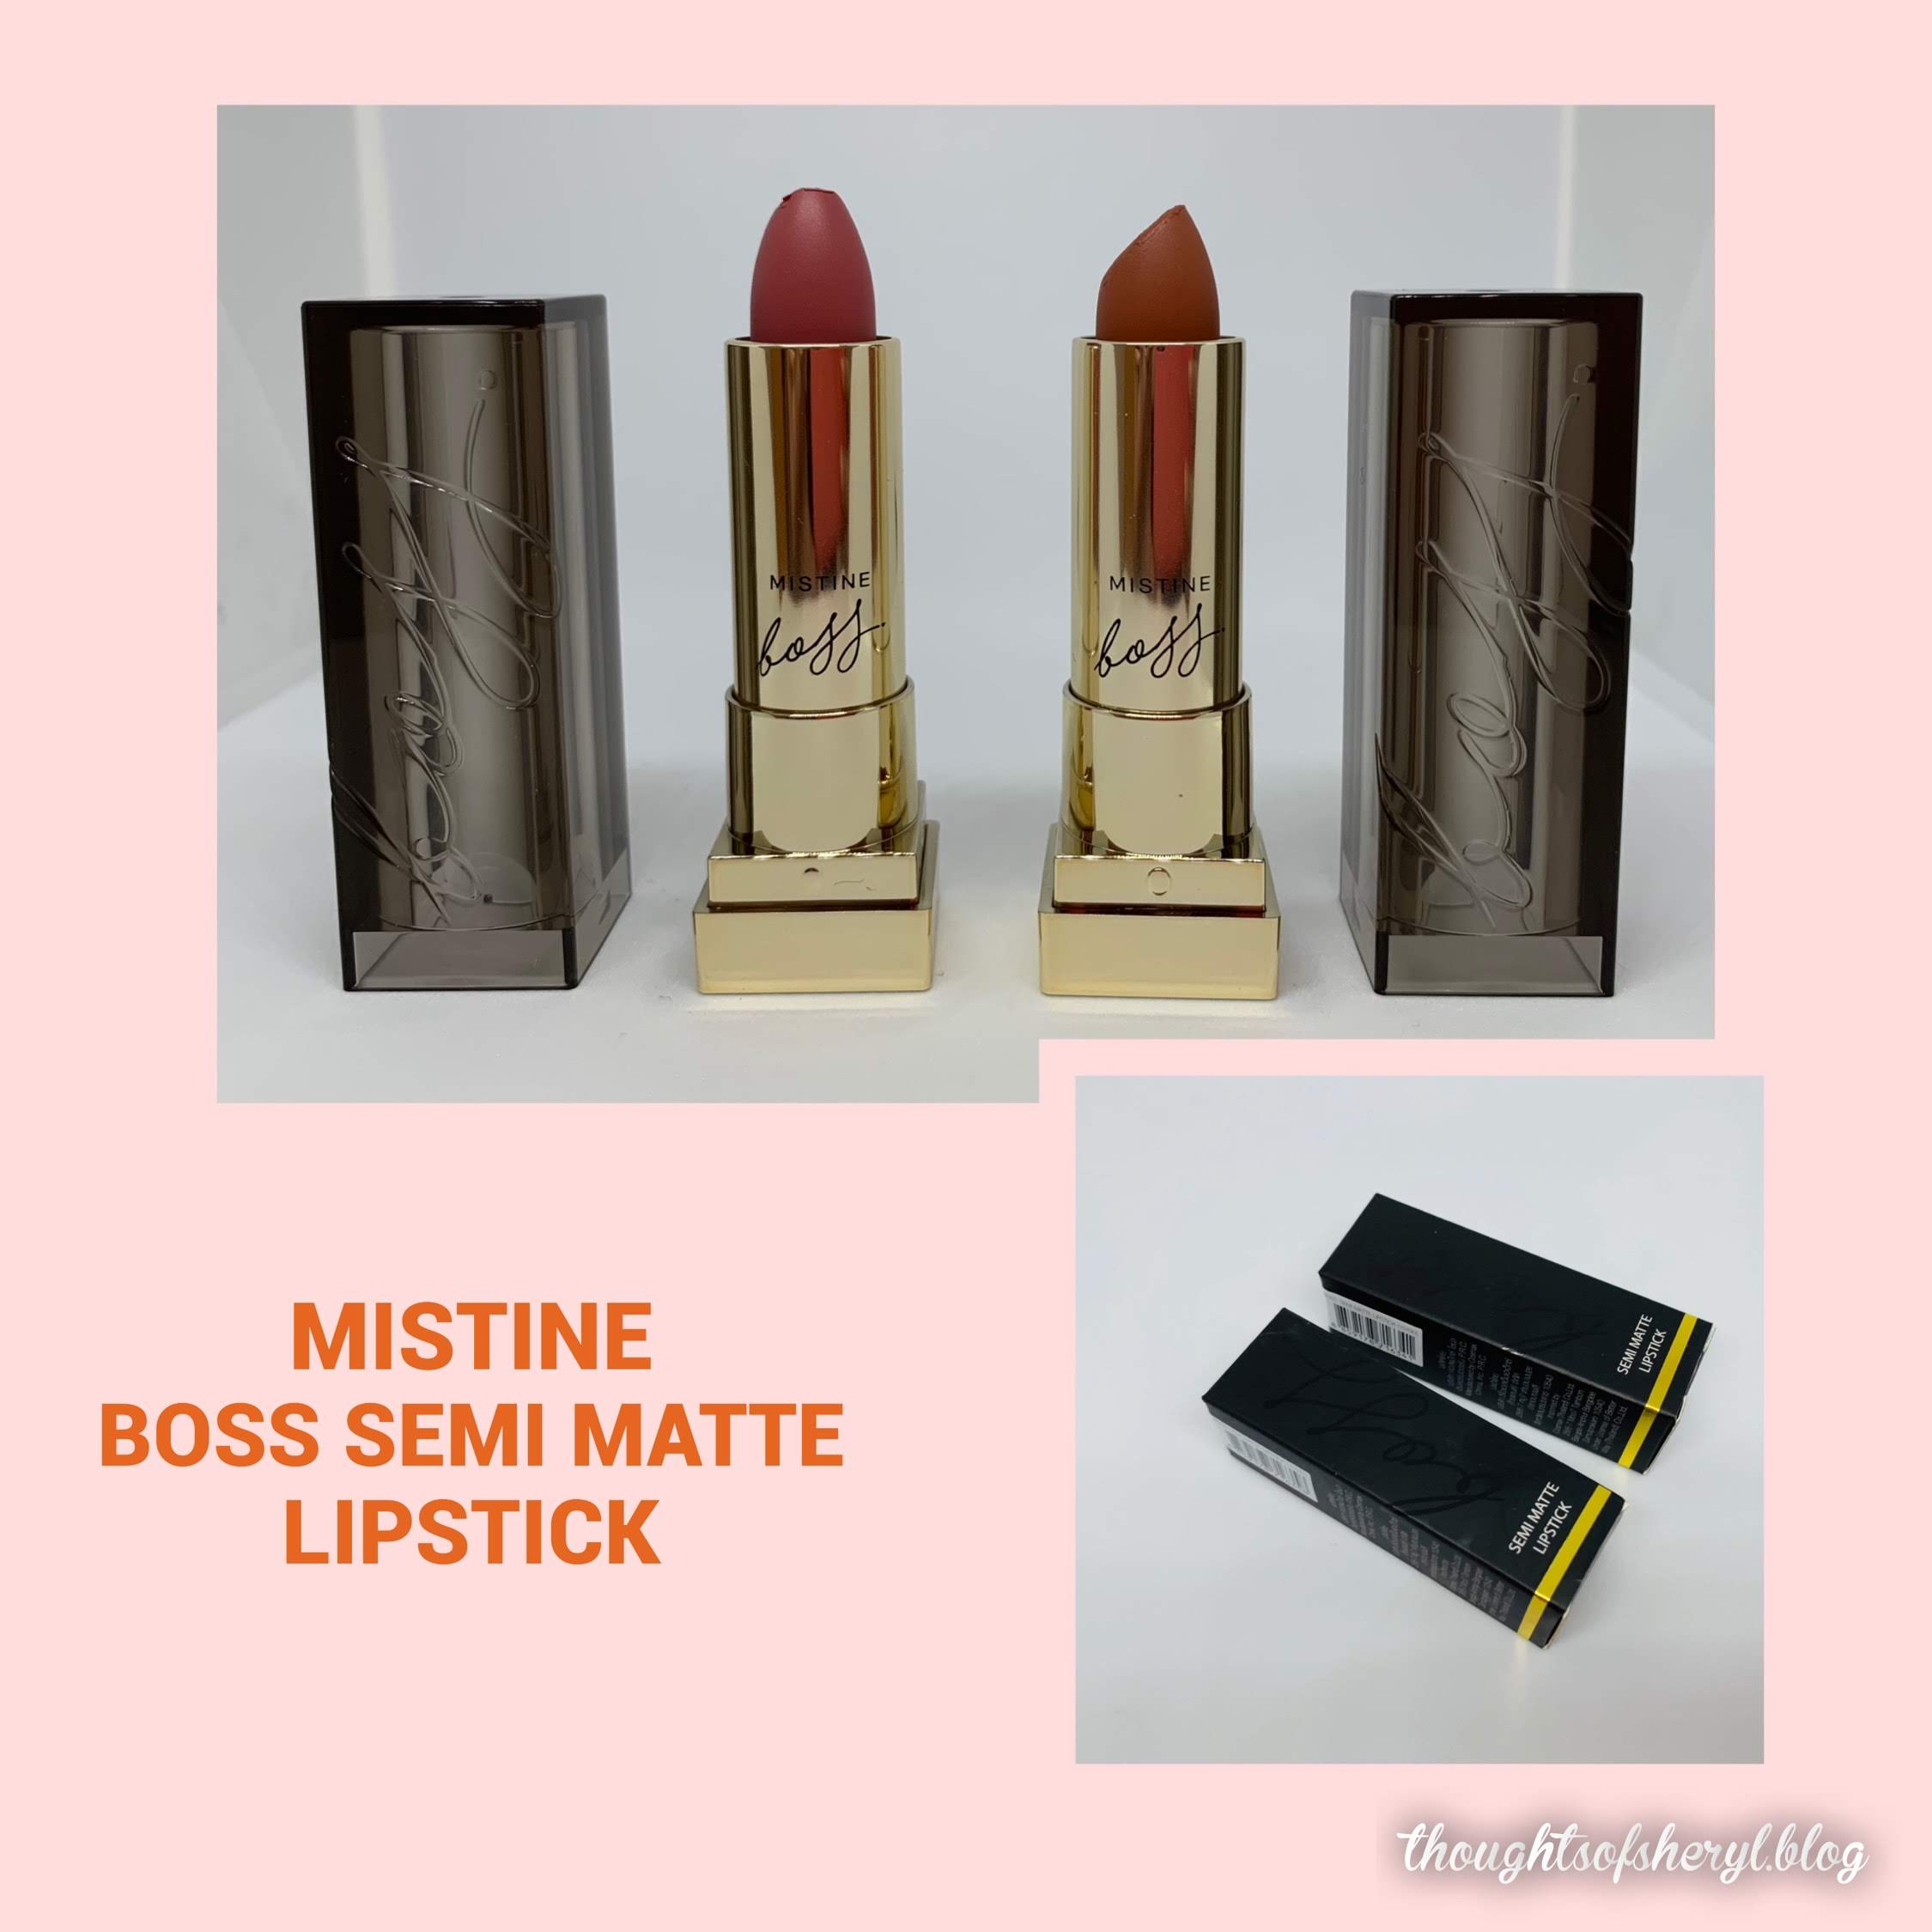 mistine boss semi matte lipstick review